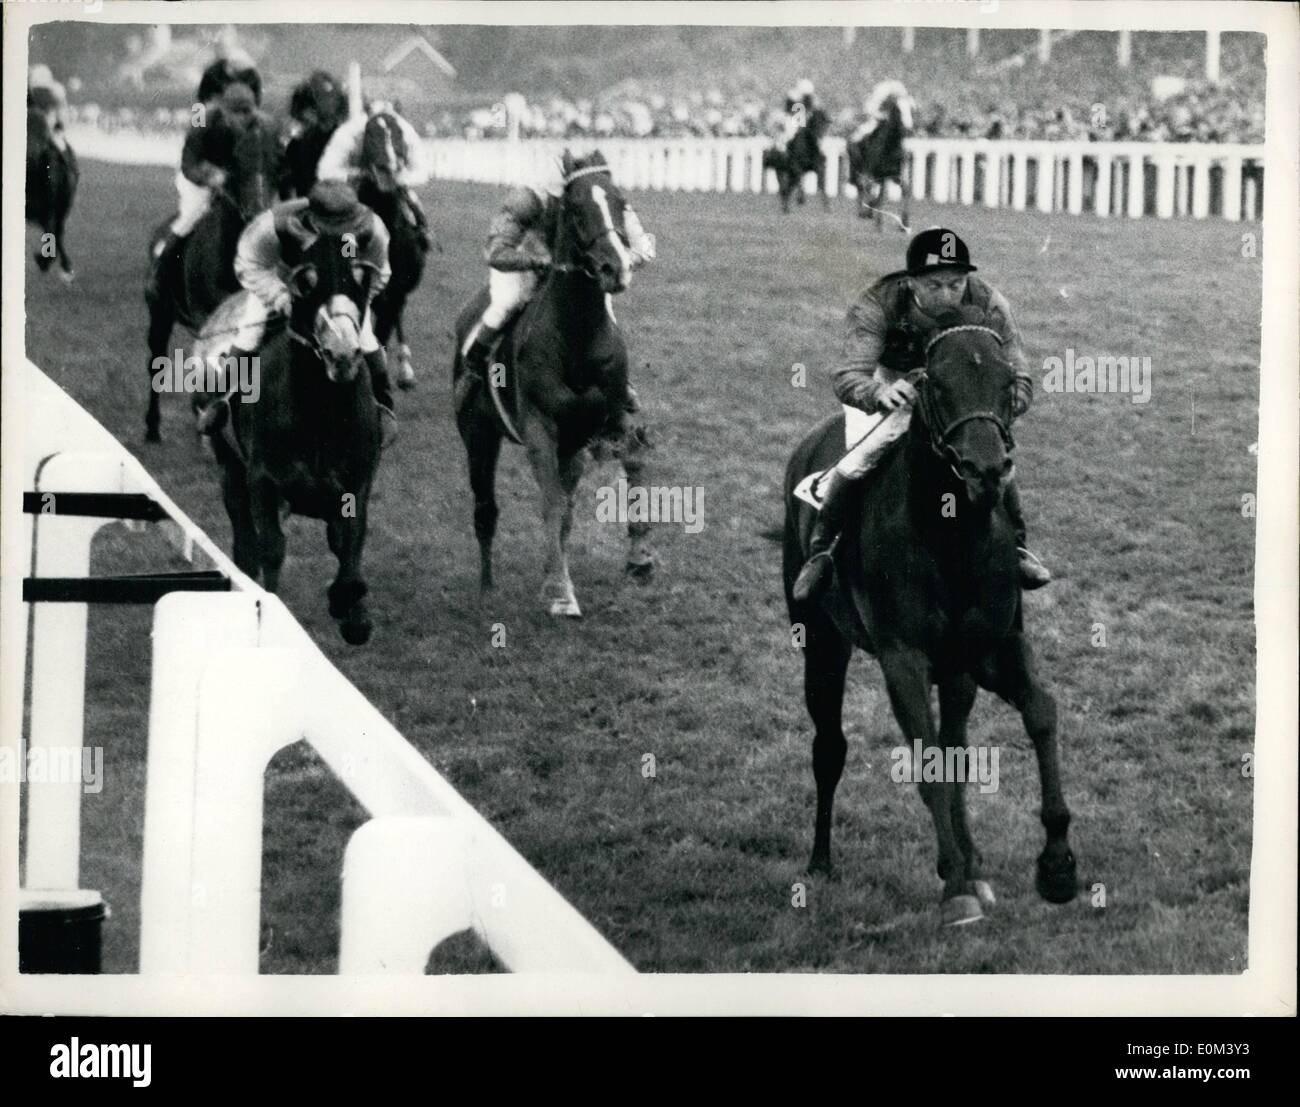 Jun. 06, 1953 - Queen Wins Royal Hunt Cup. Second-Day At Royal Ascot: Photo Shows H.M. Te Queen's Horse Choir Boy, ridden b D. Smith, seen winning the Roya;l Hunt Cup at Ascot today. From Brunetto (G. Richards), 2nd, and Hilltop (W.H. Carr), 3rd. Stock Photo